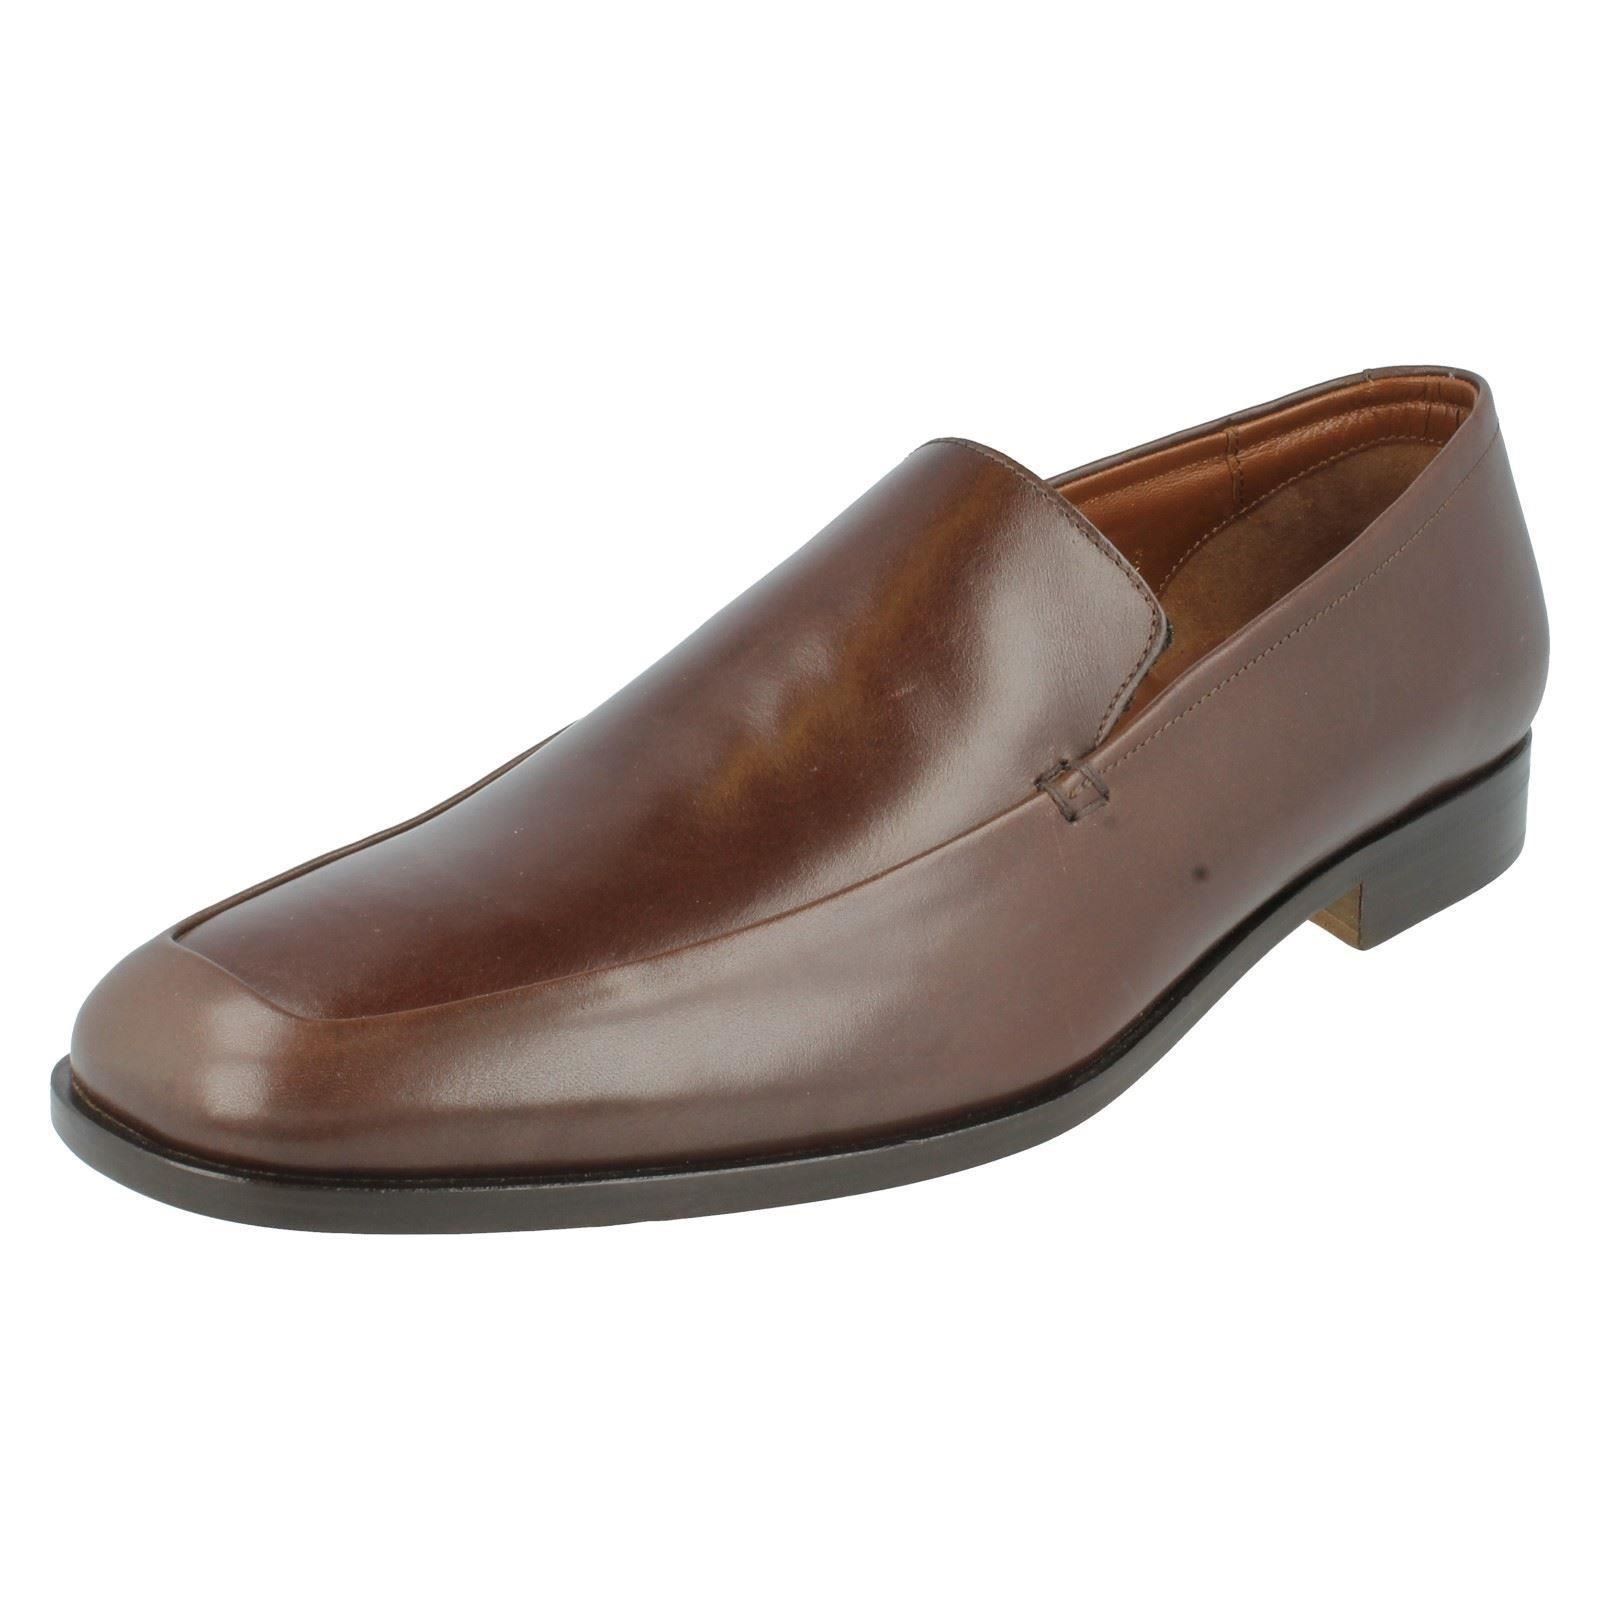 Mens Grensons Shoes Brown Leather Slip On Shoes Grensons G Fitting Nice e21aae